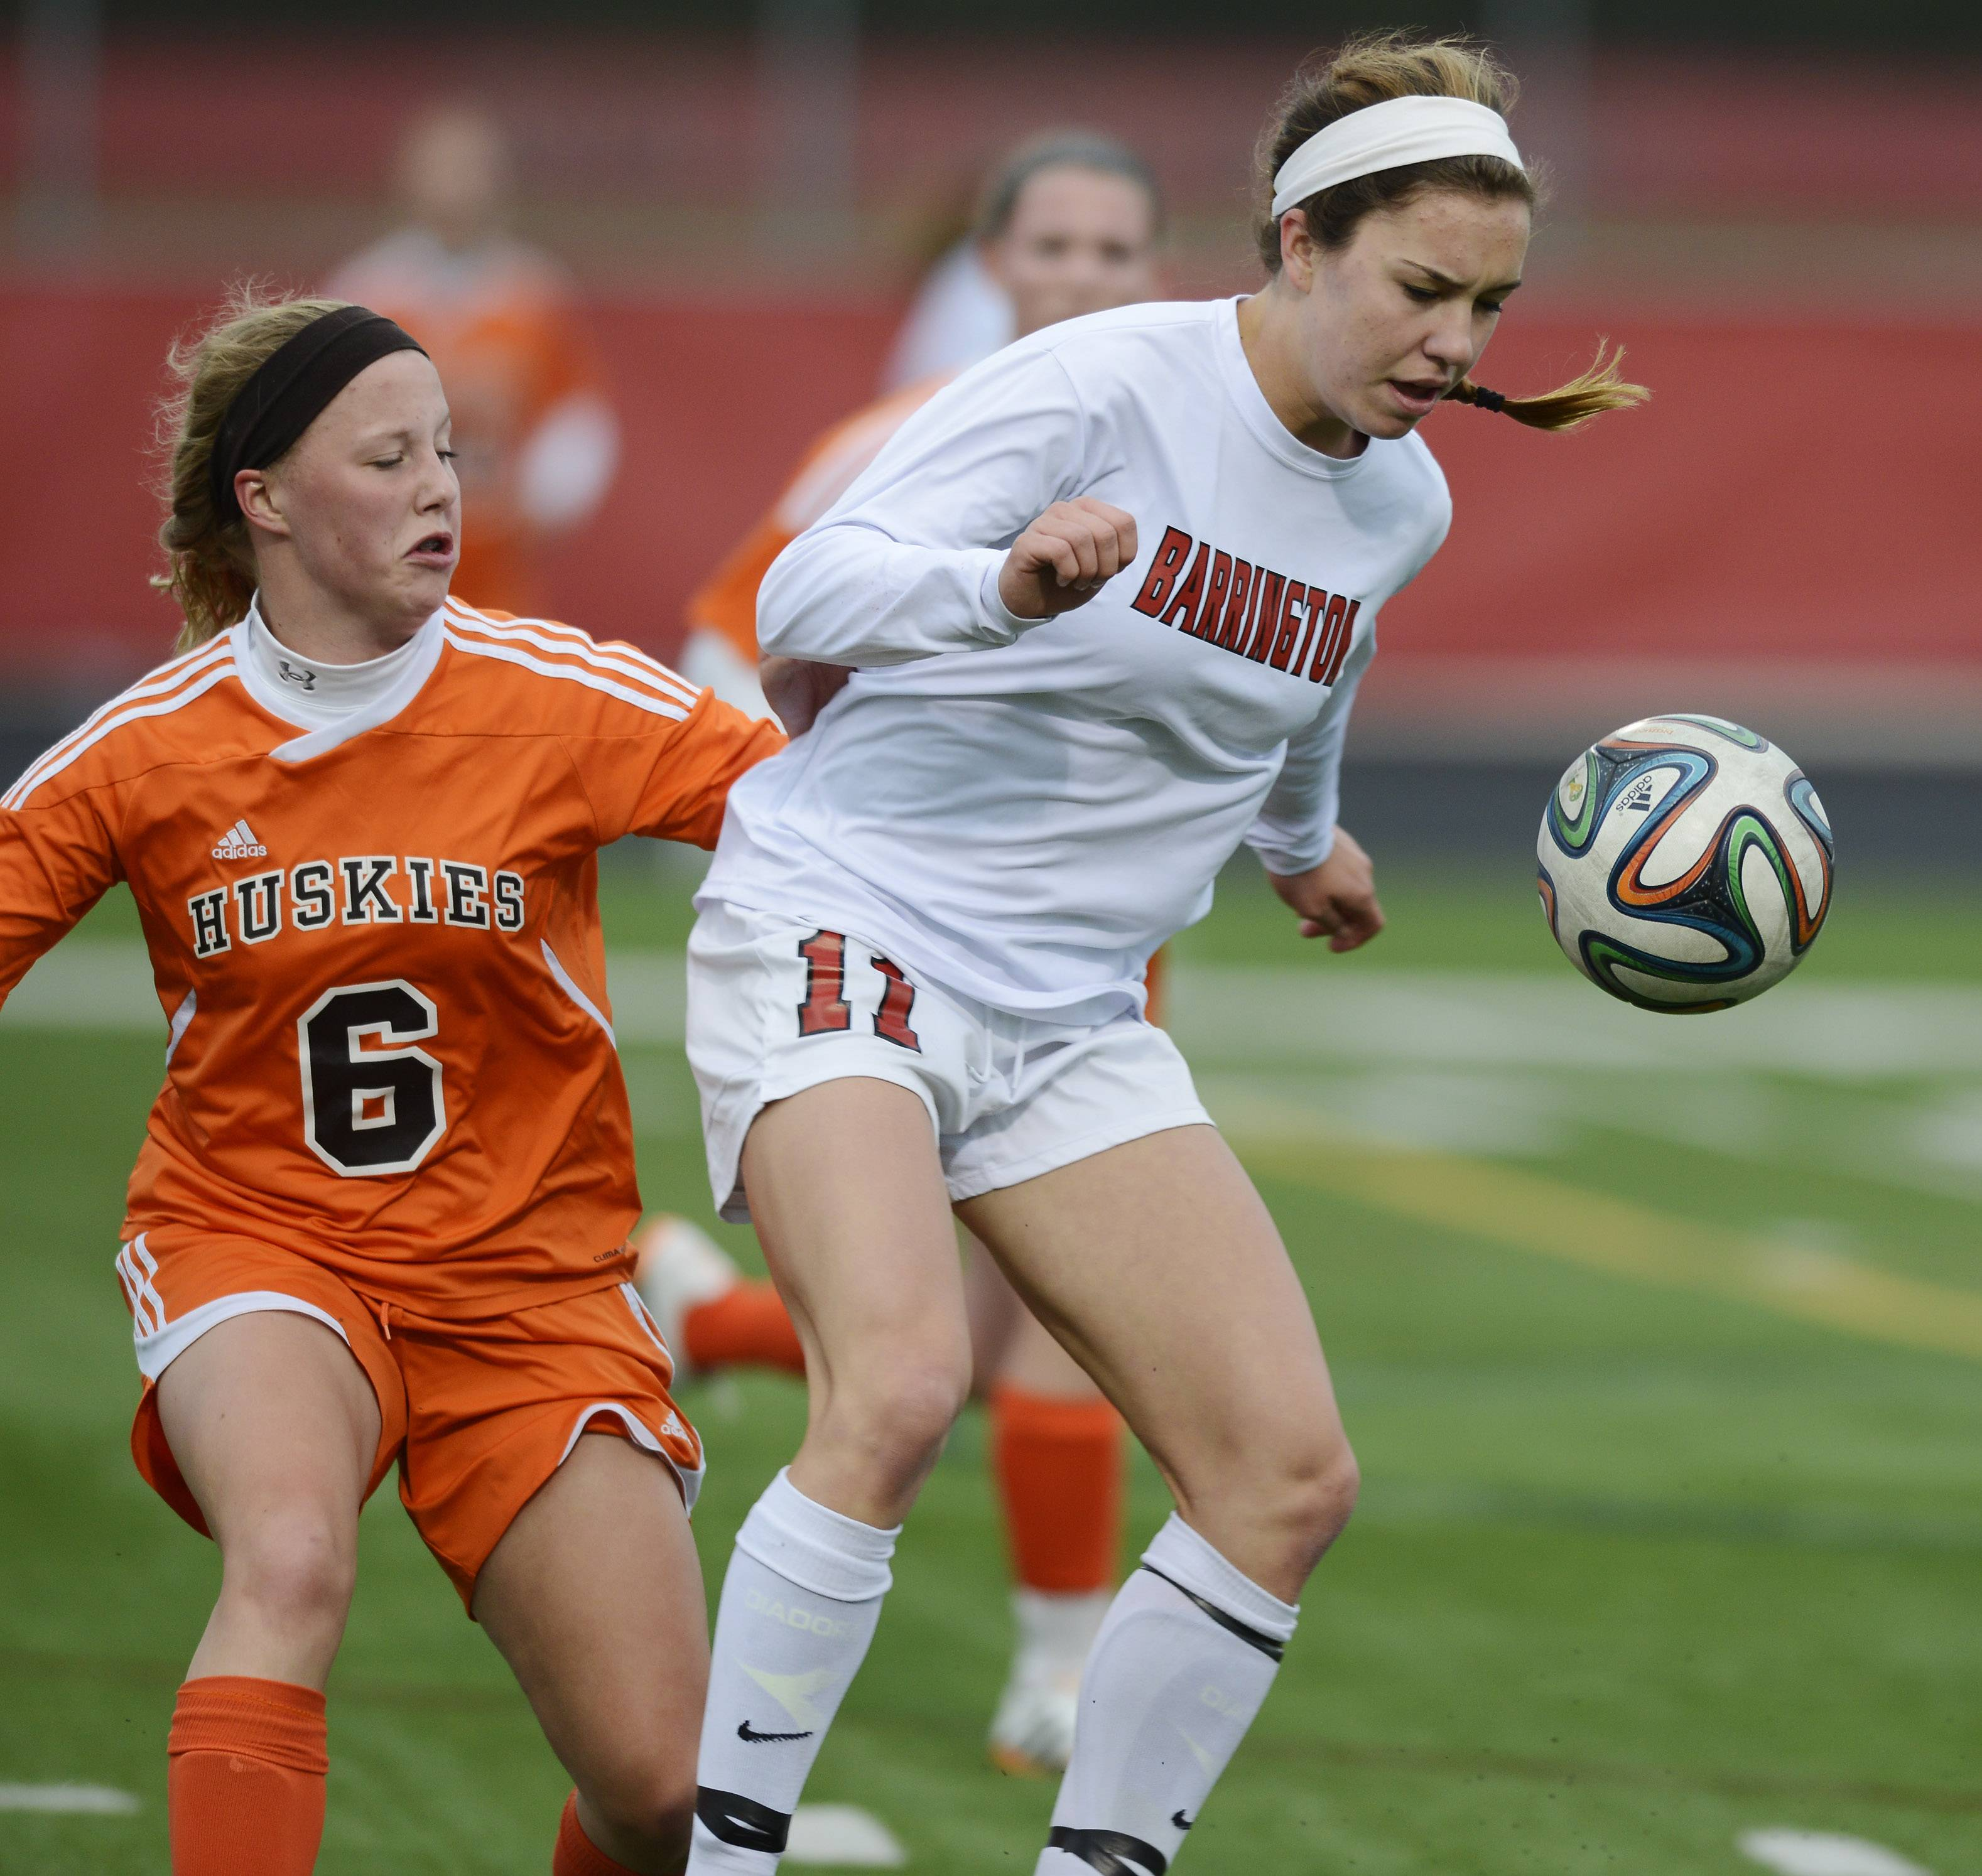 Barrington's Jenna Szczesny gets between the ball and Hersey's Sara Magnuson during the Mid-Suburban League championship game at Barrington on Wednesday.